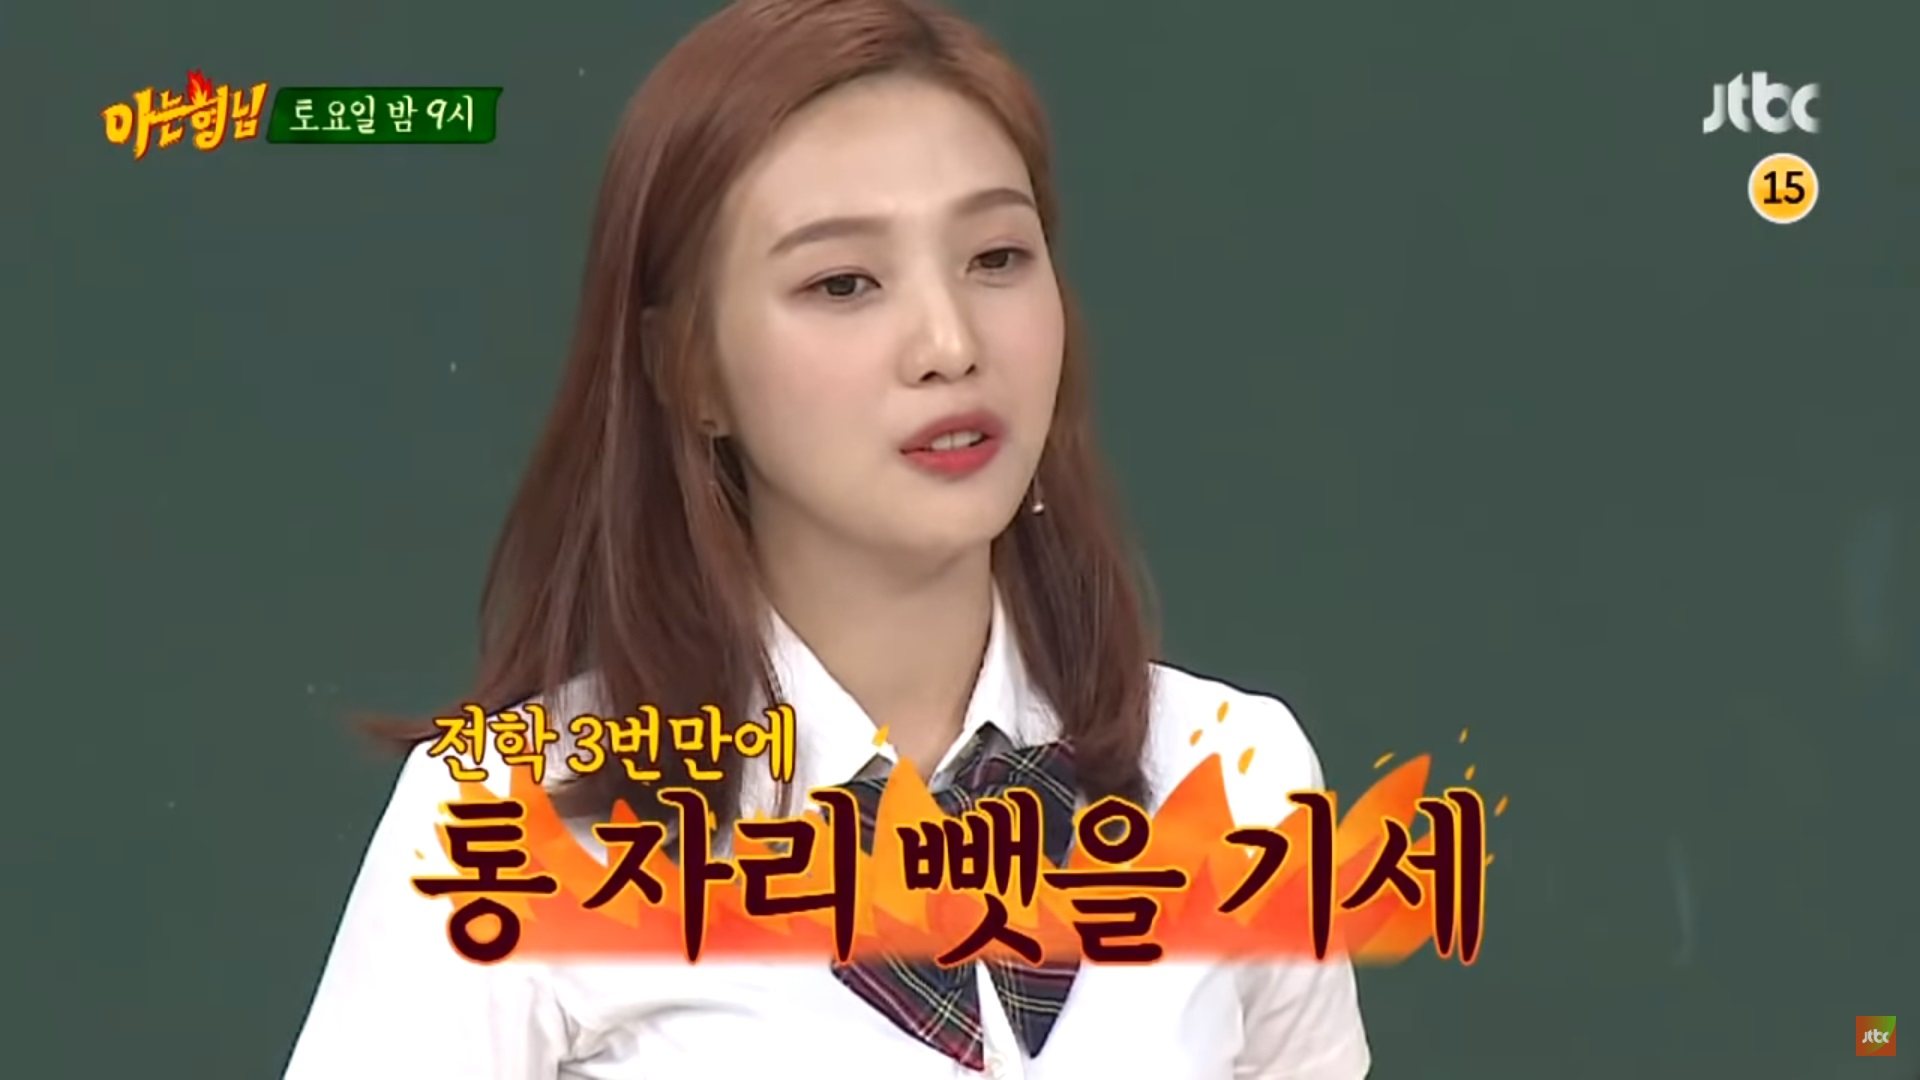 Bersikap Arogan Saat Bintangi 'Knowing Brother', Joy Red Velvet Tuai Kritikan Netizen